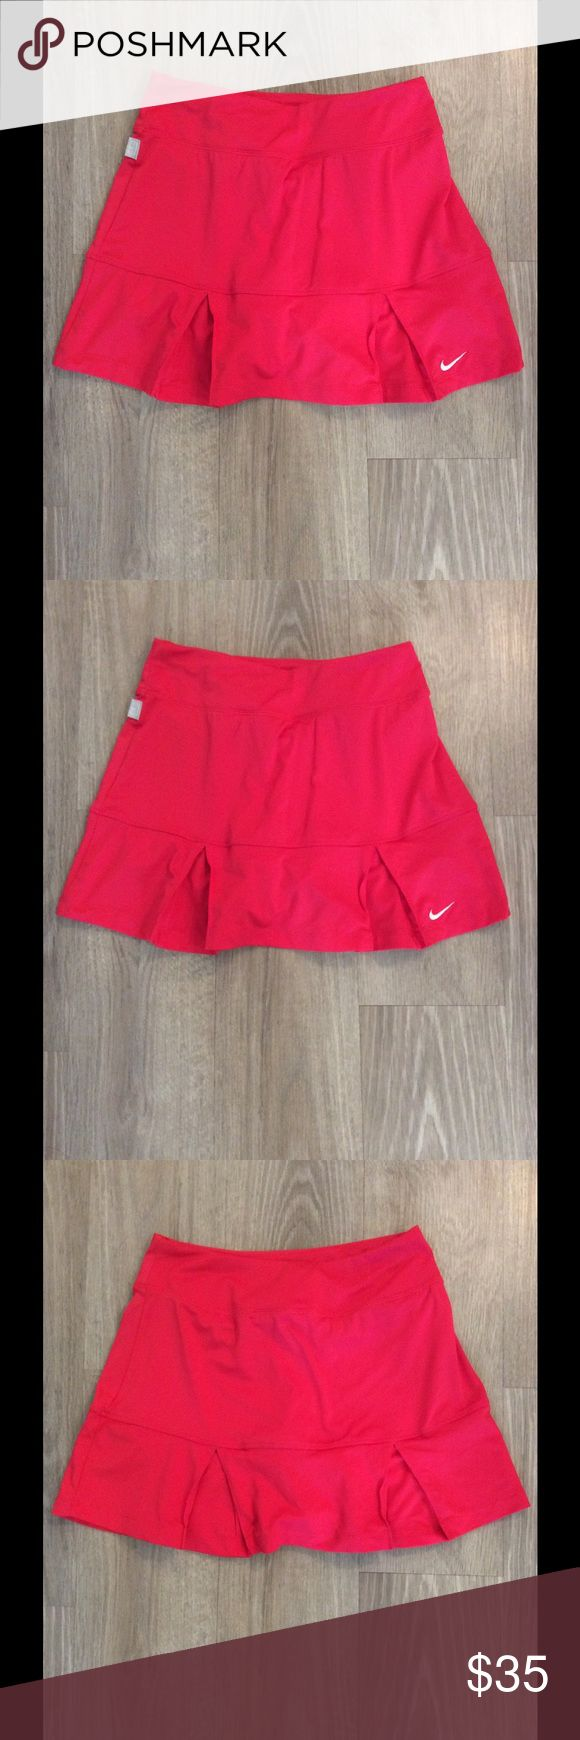 Women's Red Nike tennis skort Women's red pleated Nike Dri - Fit tennis skort. No flaws and no discoloration. Comfortable and has no piling. Nike Shorts Skorts